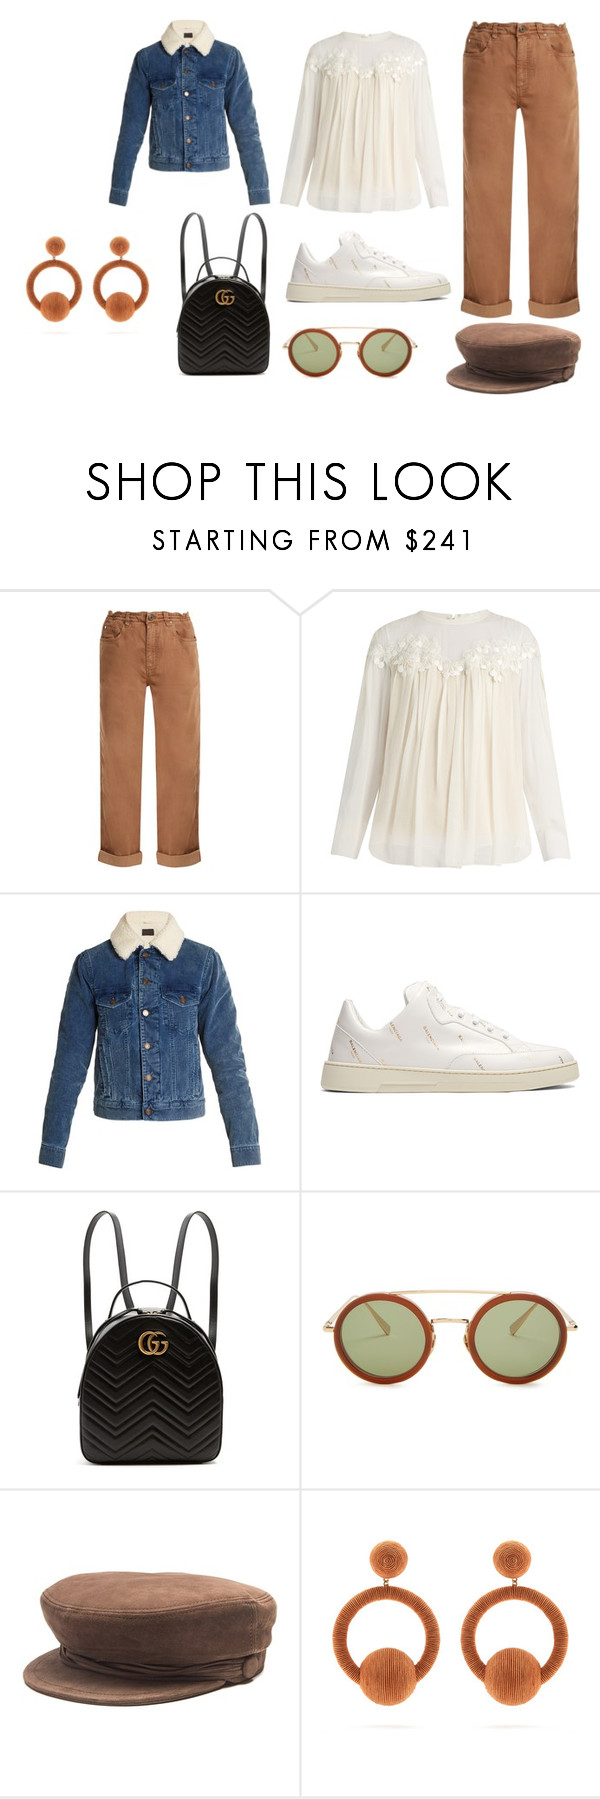 """Sin título #3379"" by ceciamuedo ❤ liked on Polyvore featuring Brunello Cucinelli, Chloé, Yves Saint Laurent, Balenciaga, Gucci, Kaleos, Maison Michel and Rebecca de Ravenel"